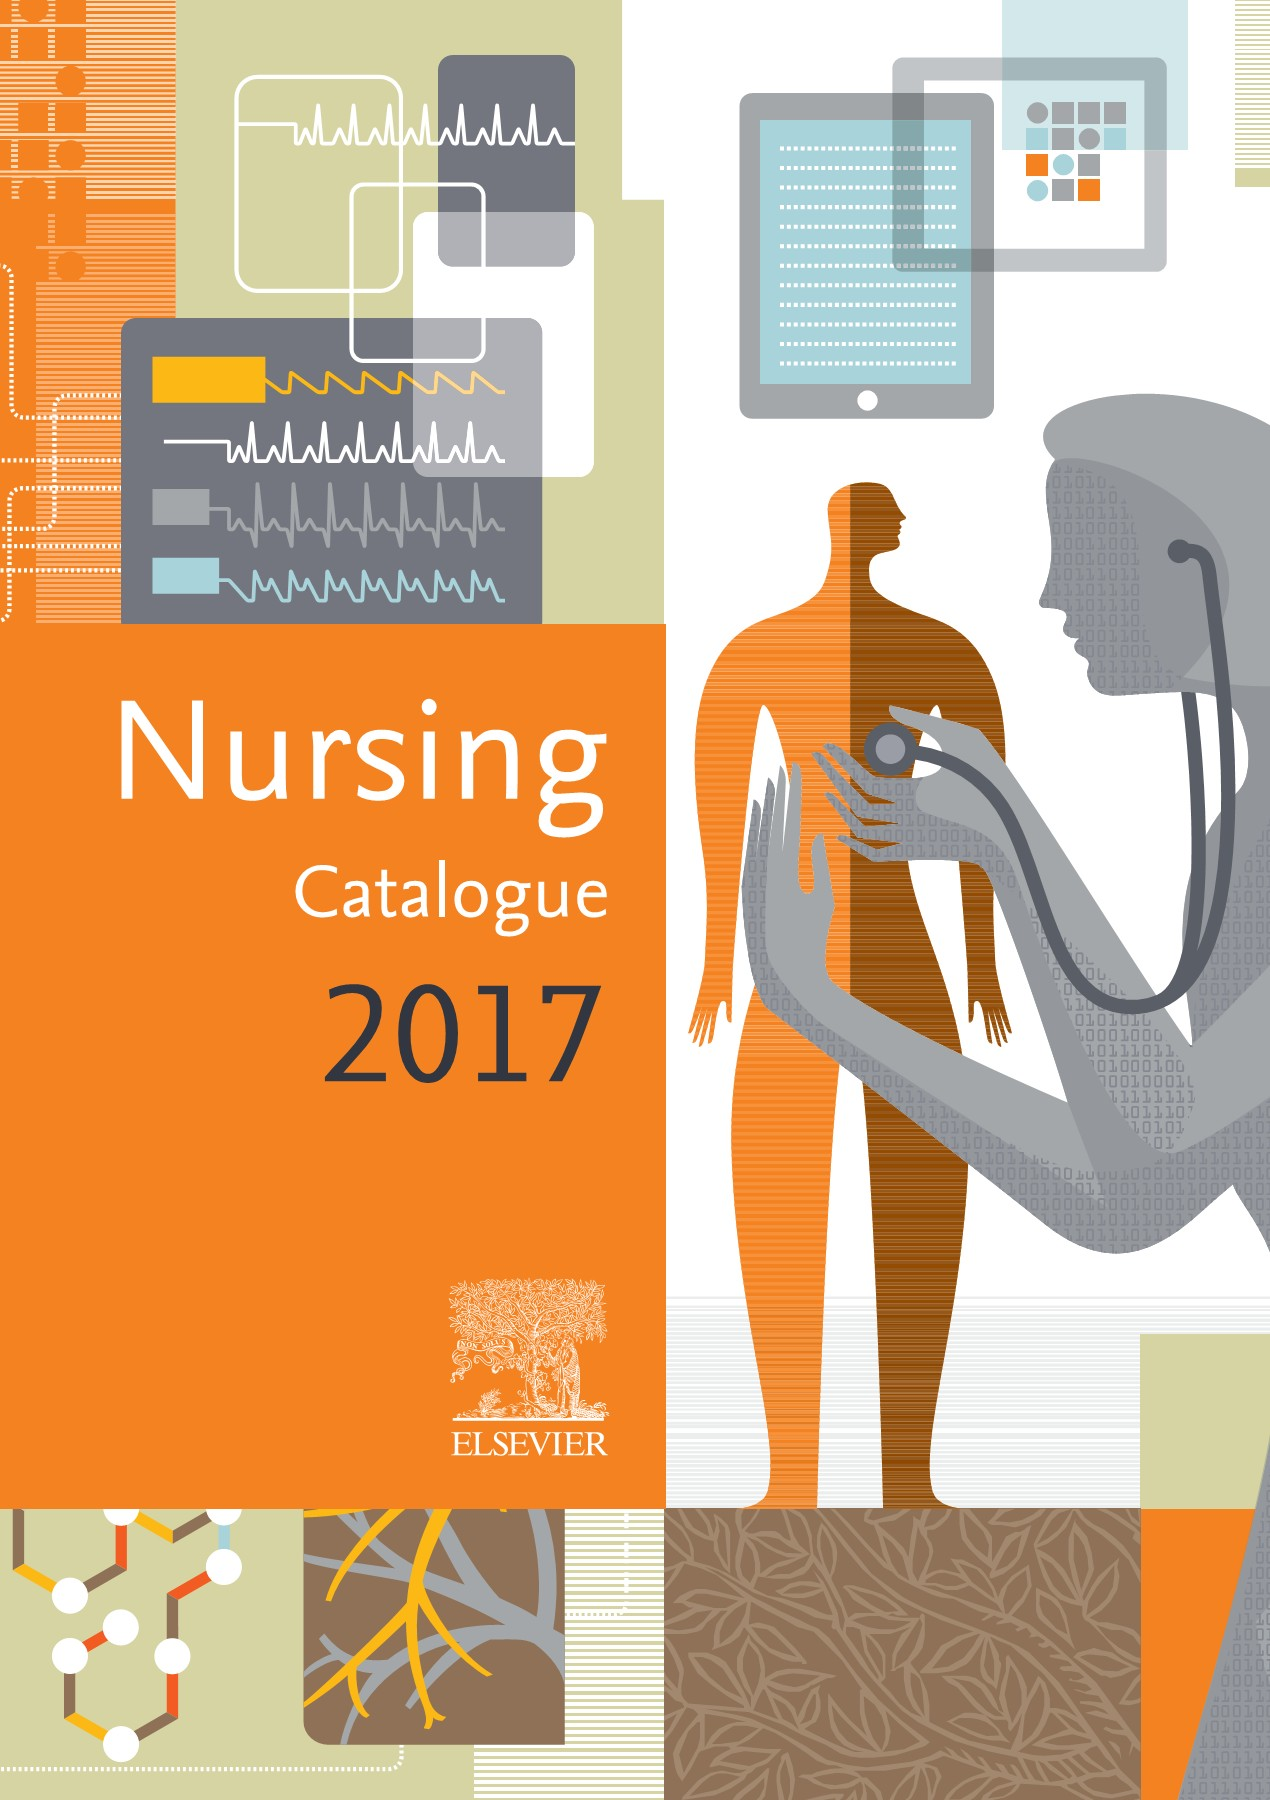 SEA Nursing Catalogue 2017 Pages 1 - 50 - Text Version   AnyFlip on free 3d maps, free blank maps for teachers, free projects, free bubble maps, free esri maps, free graphics maps, free thinking maps, free printable maps for teachers, free form maps, free dd map generator, free map software for pc, free art maps, free story maps, free blogs, free audio, free mind maps, free character maps, free process maps, free environment maps,